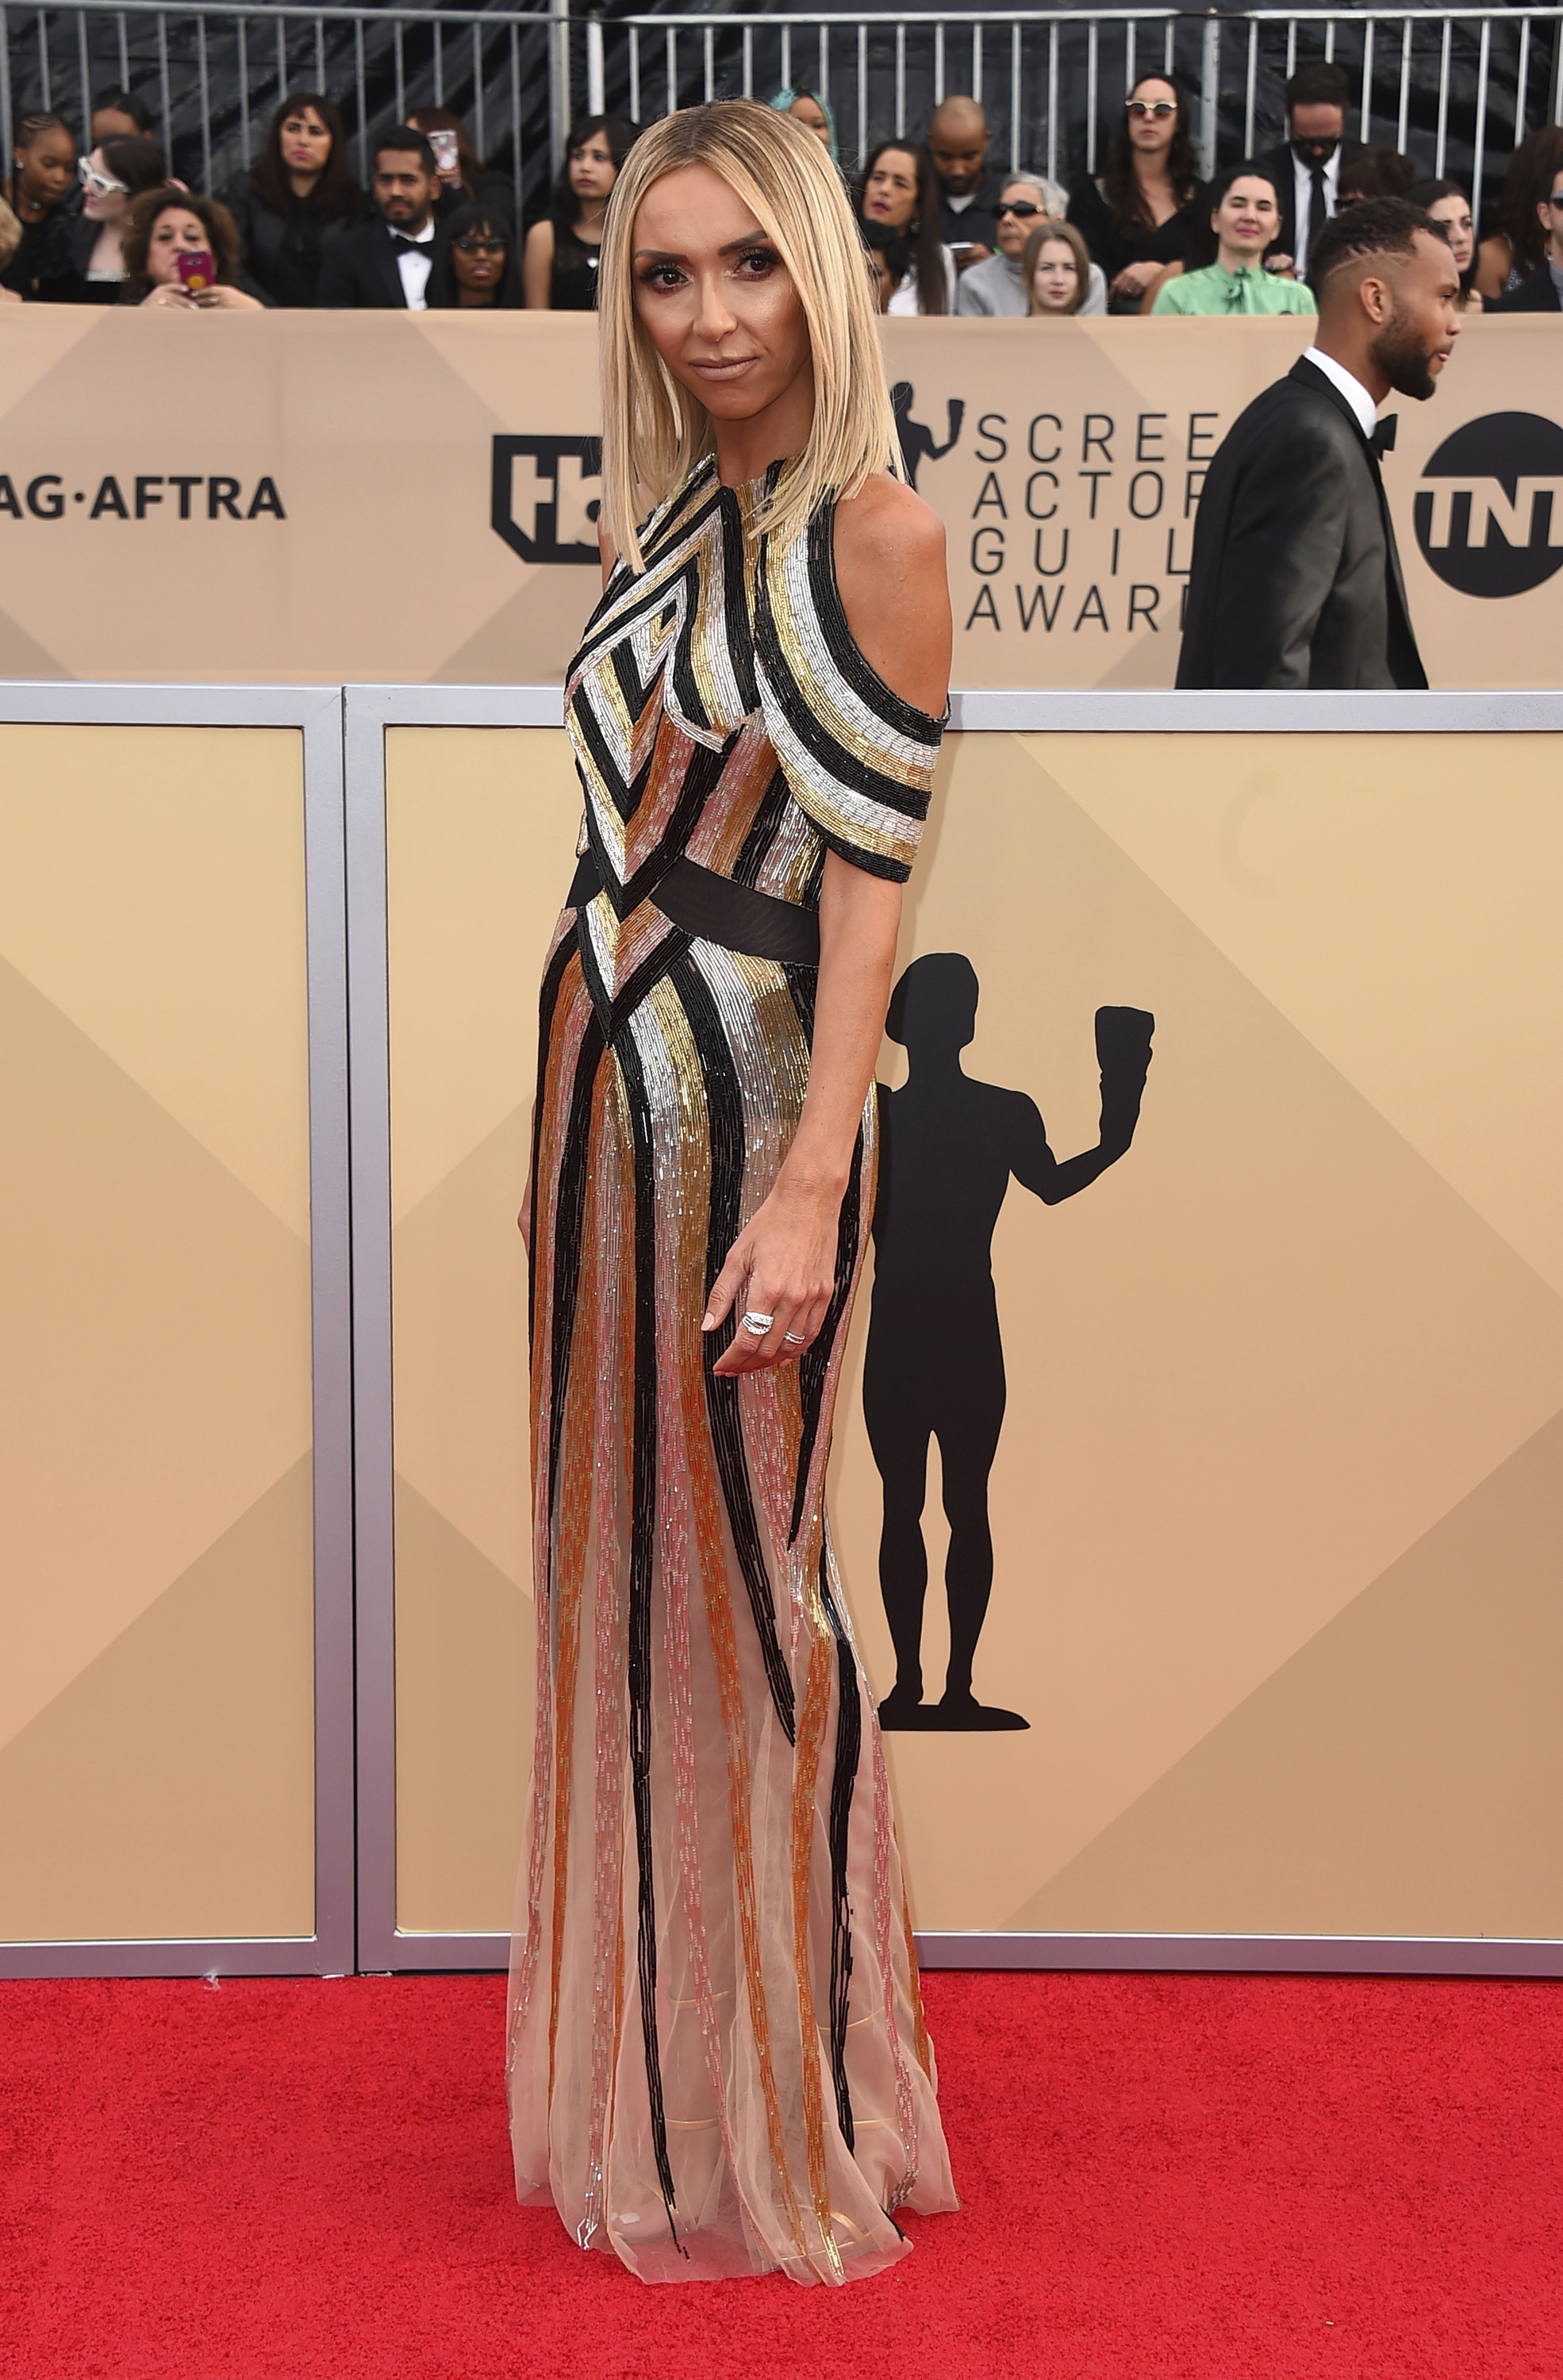 <div class='meta'><div class='origin-logo' data-origin='AP'></div><span class='caption-text' data-credit='Jordan Strauss/Invision/AP'>Giuliana Rancic arrives at the 24th annual Screen Actors Guild Awards at the Shrine Auditorium & Expo Hall on Sunday, Jan. 21, 2018, in Los Angeles.</span></div>